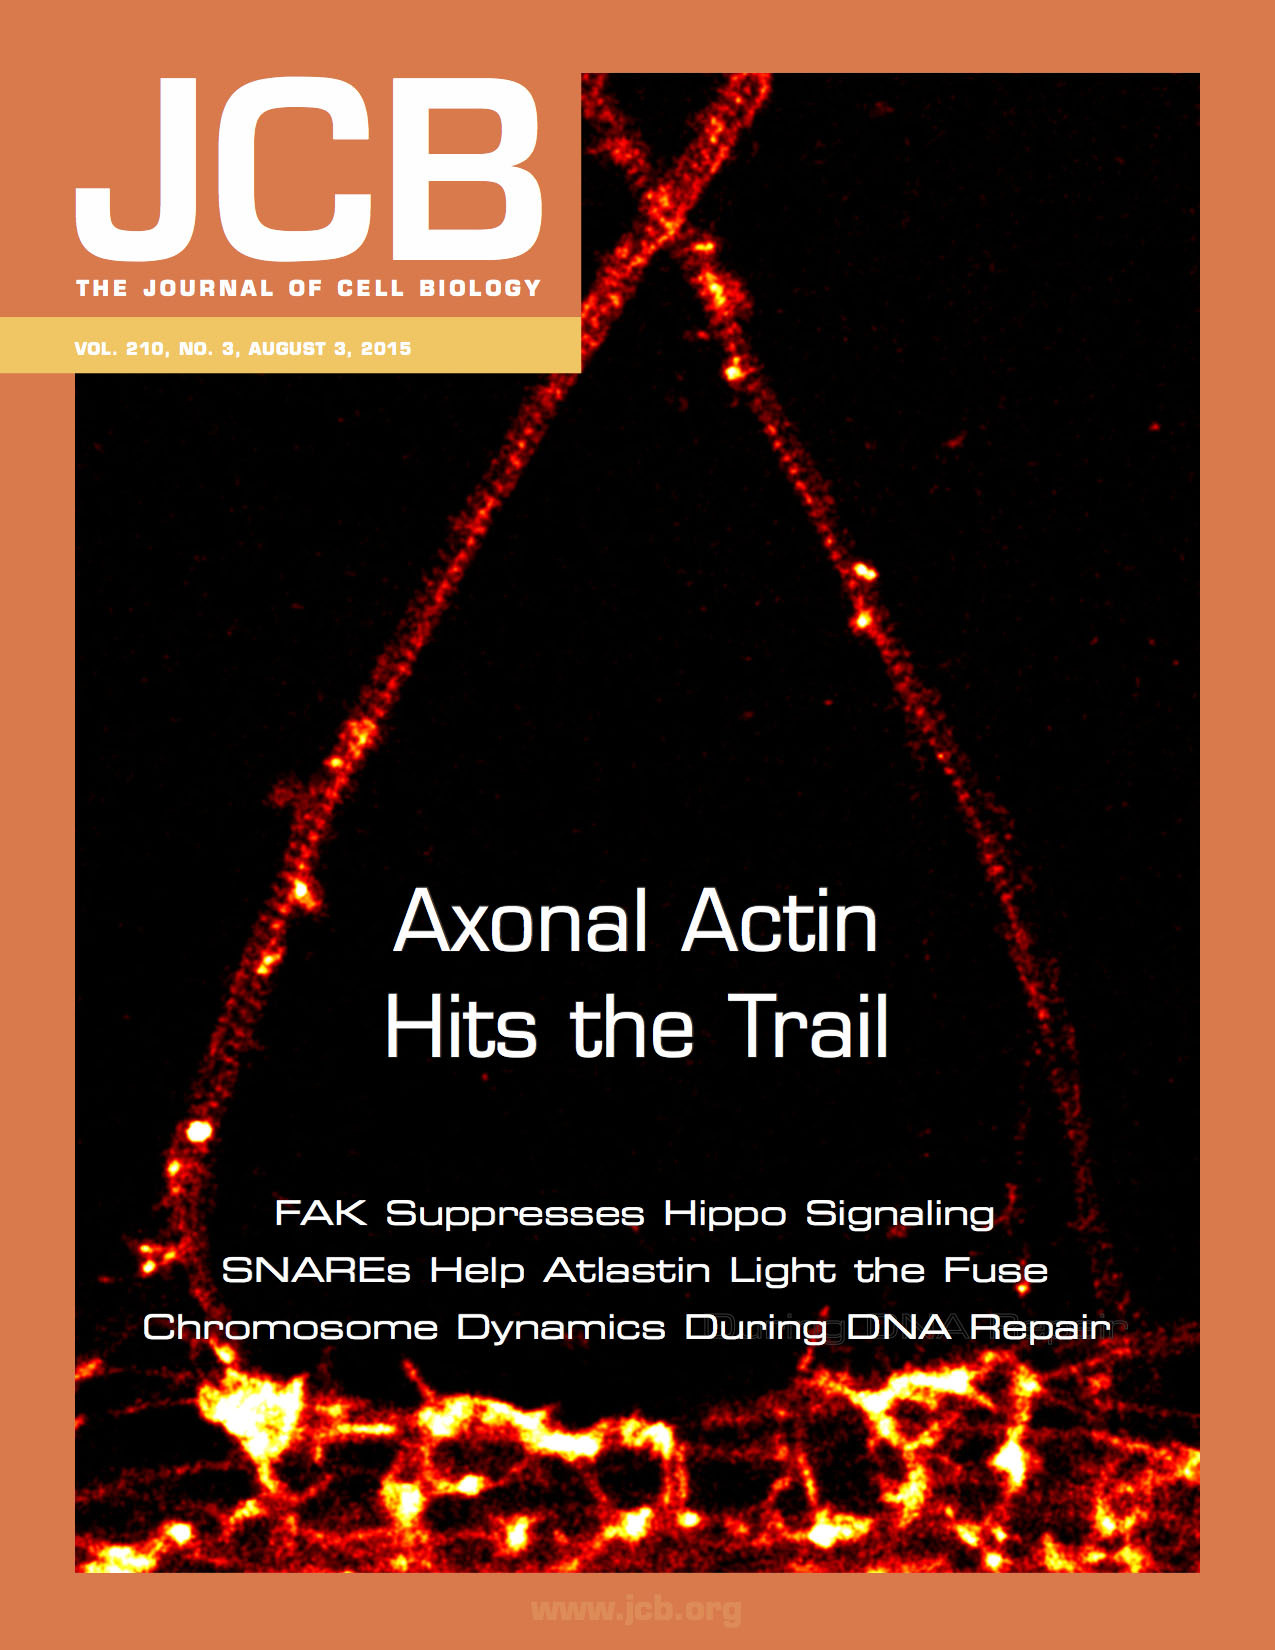 STORM images of actin showing axons (top) contacting a dendrite (bottom), cover of J. Cell. Biol. August 2015 issue